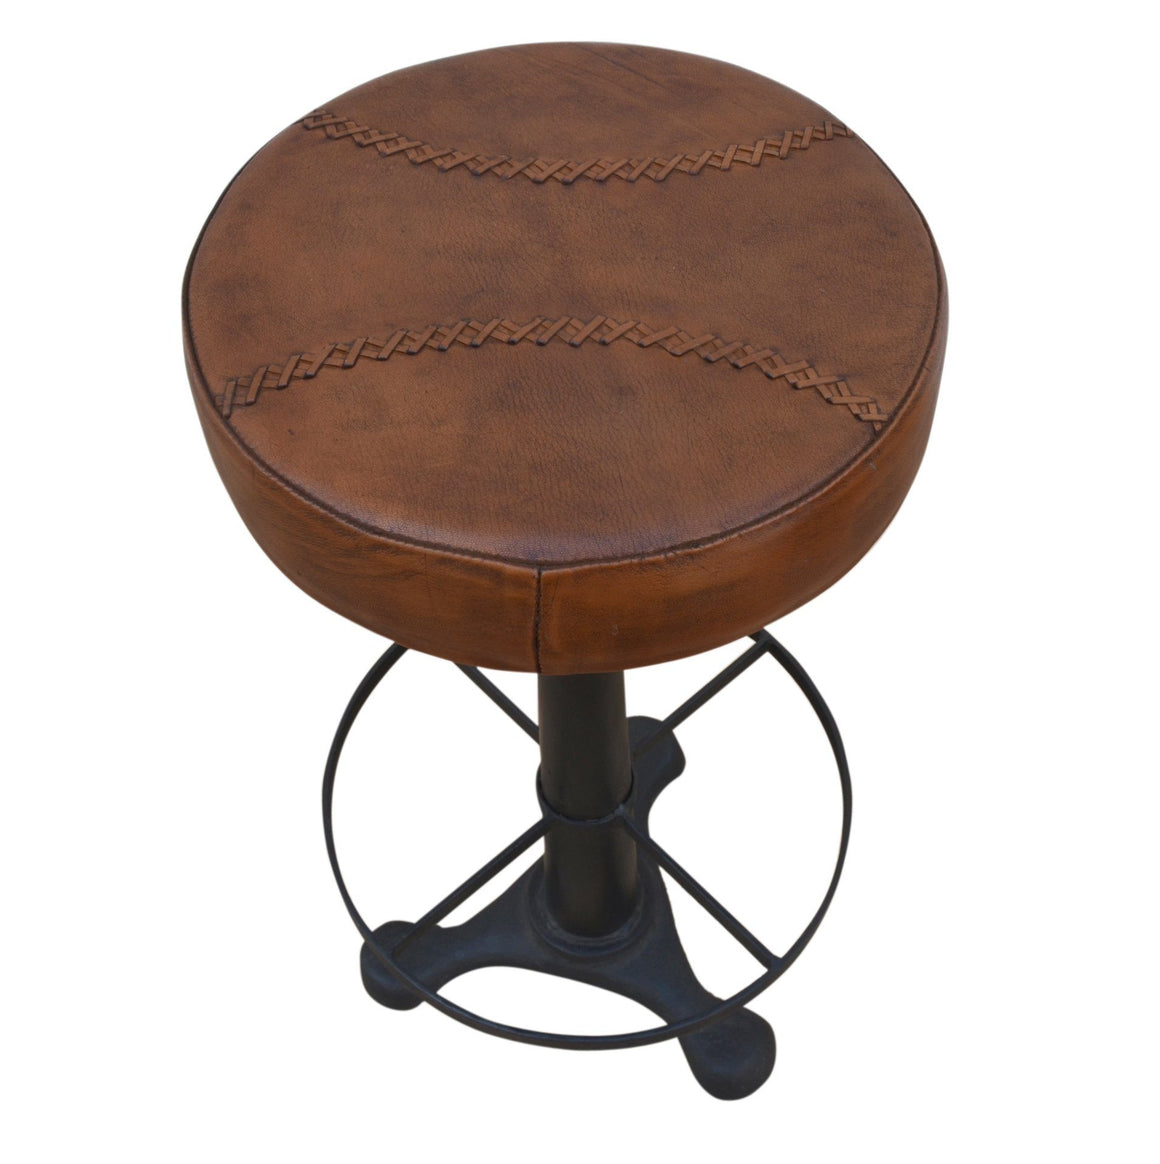 INDUSTRIAL BAR STOOL LEATHER SEAT Philbee Interiors